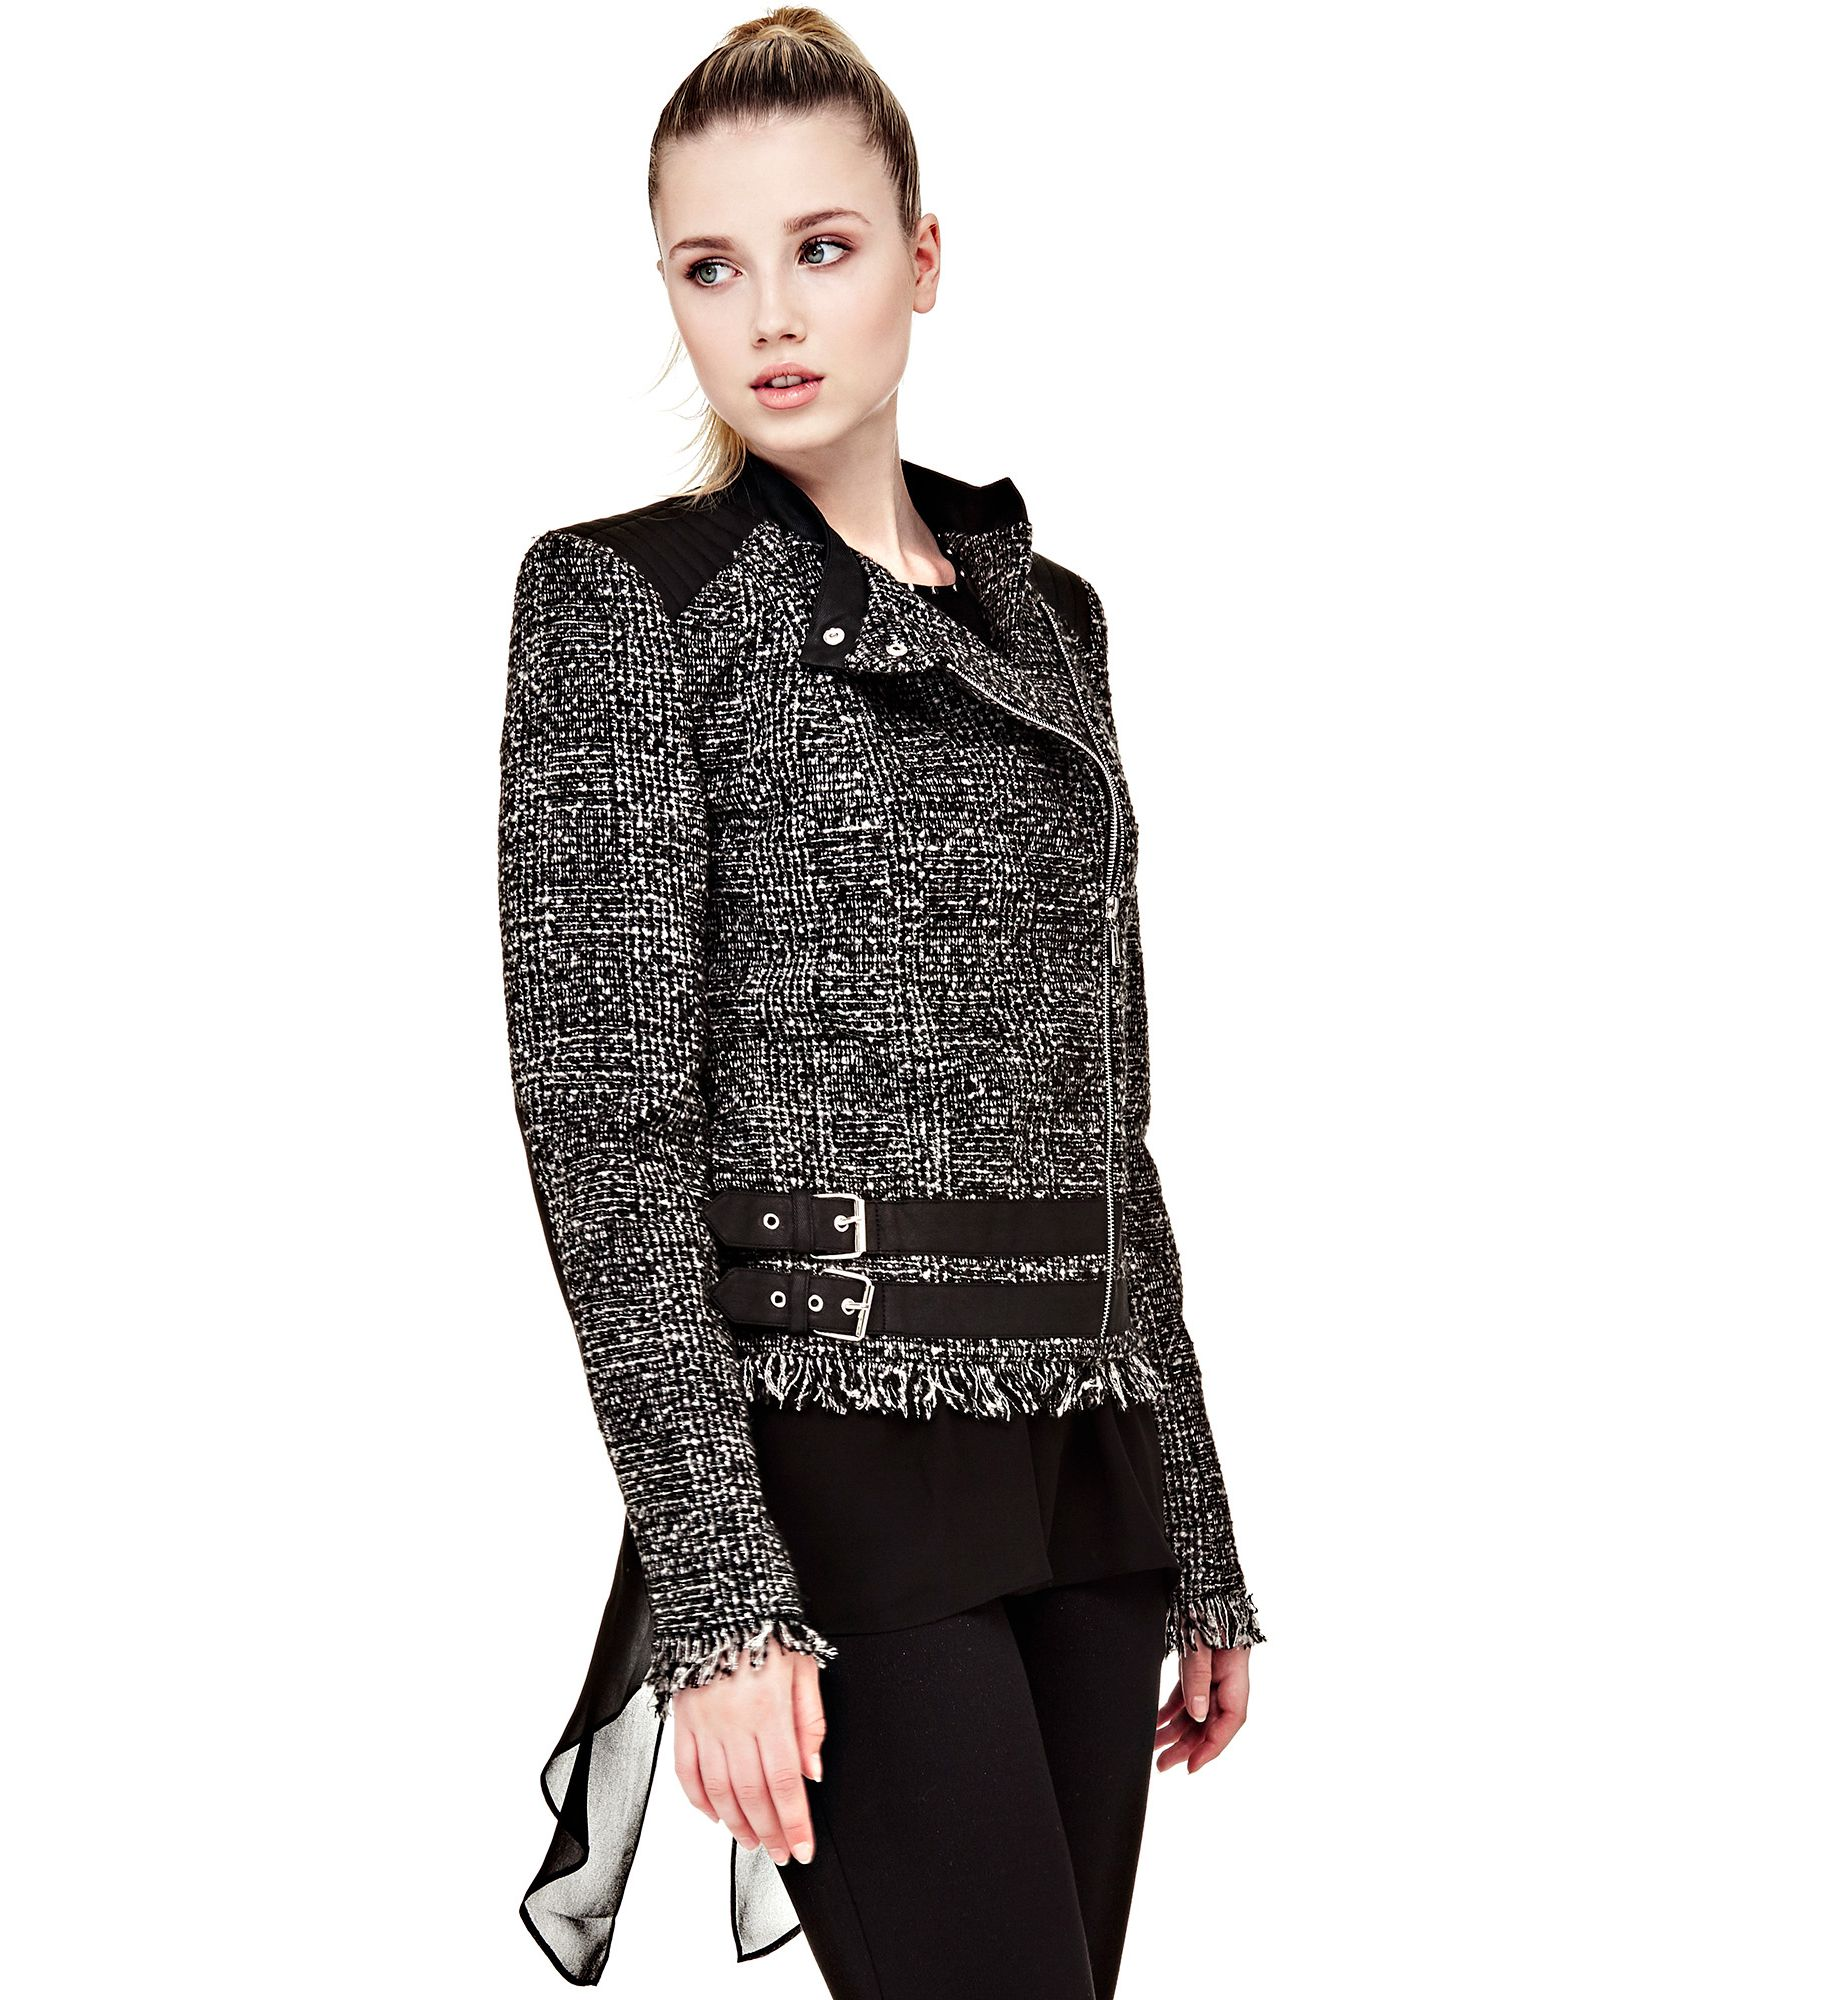 GIACCA EFFETTO TWEED CINTURE